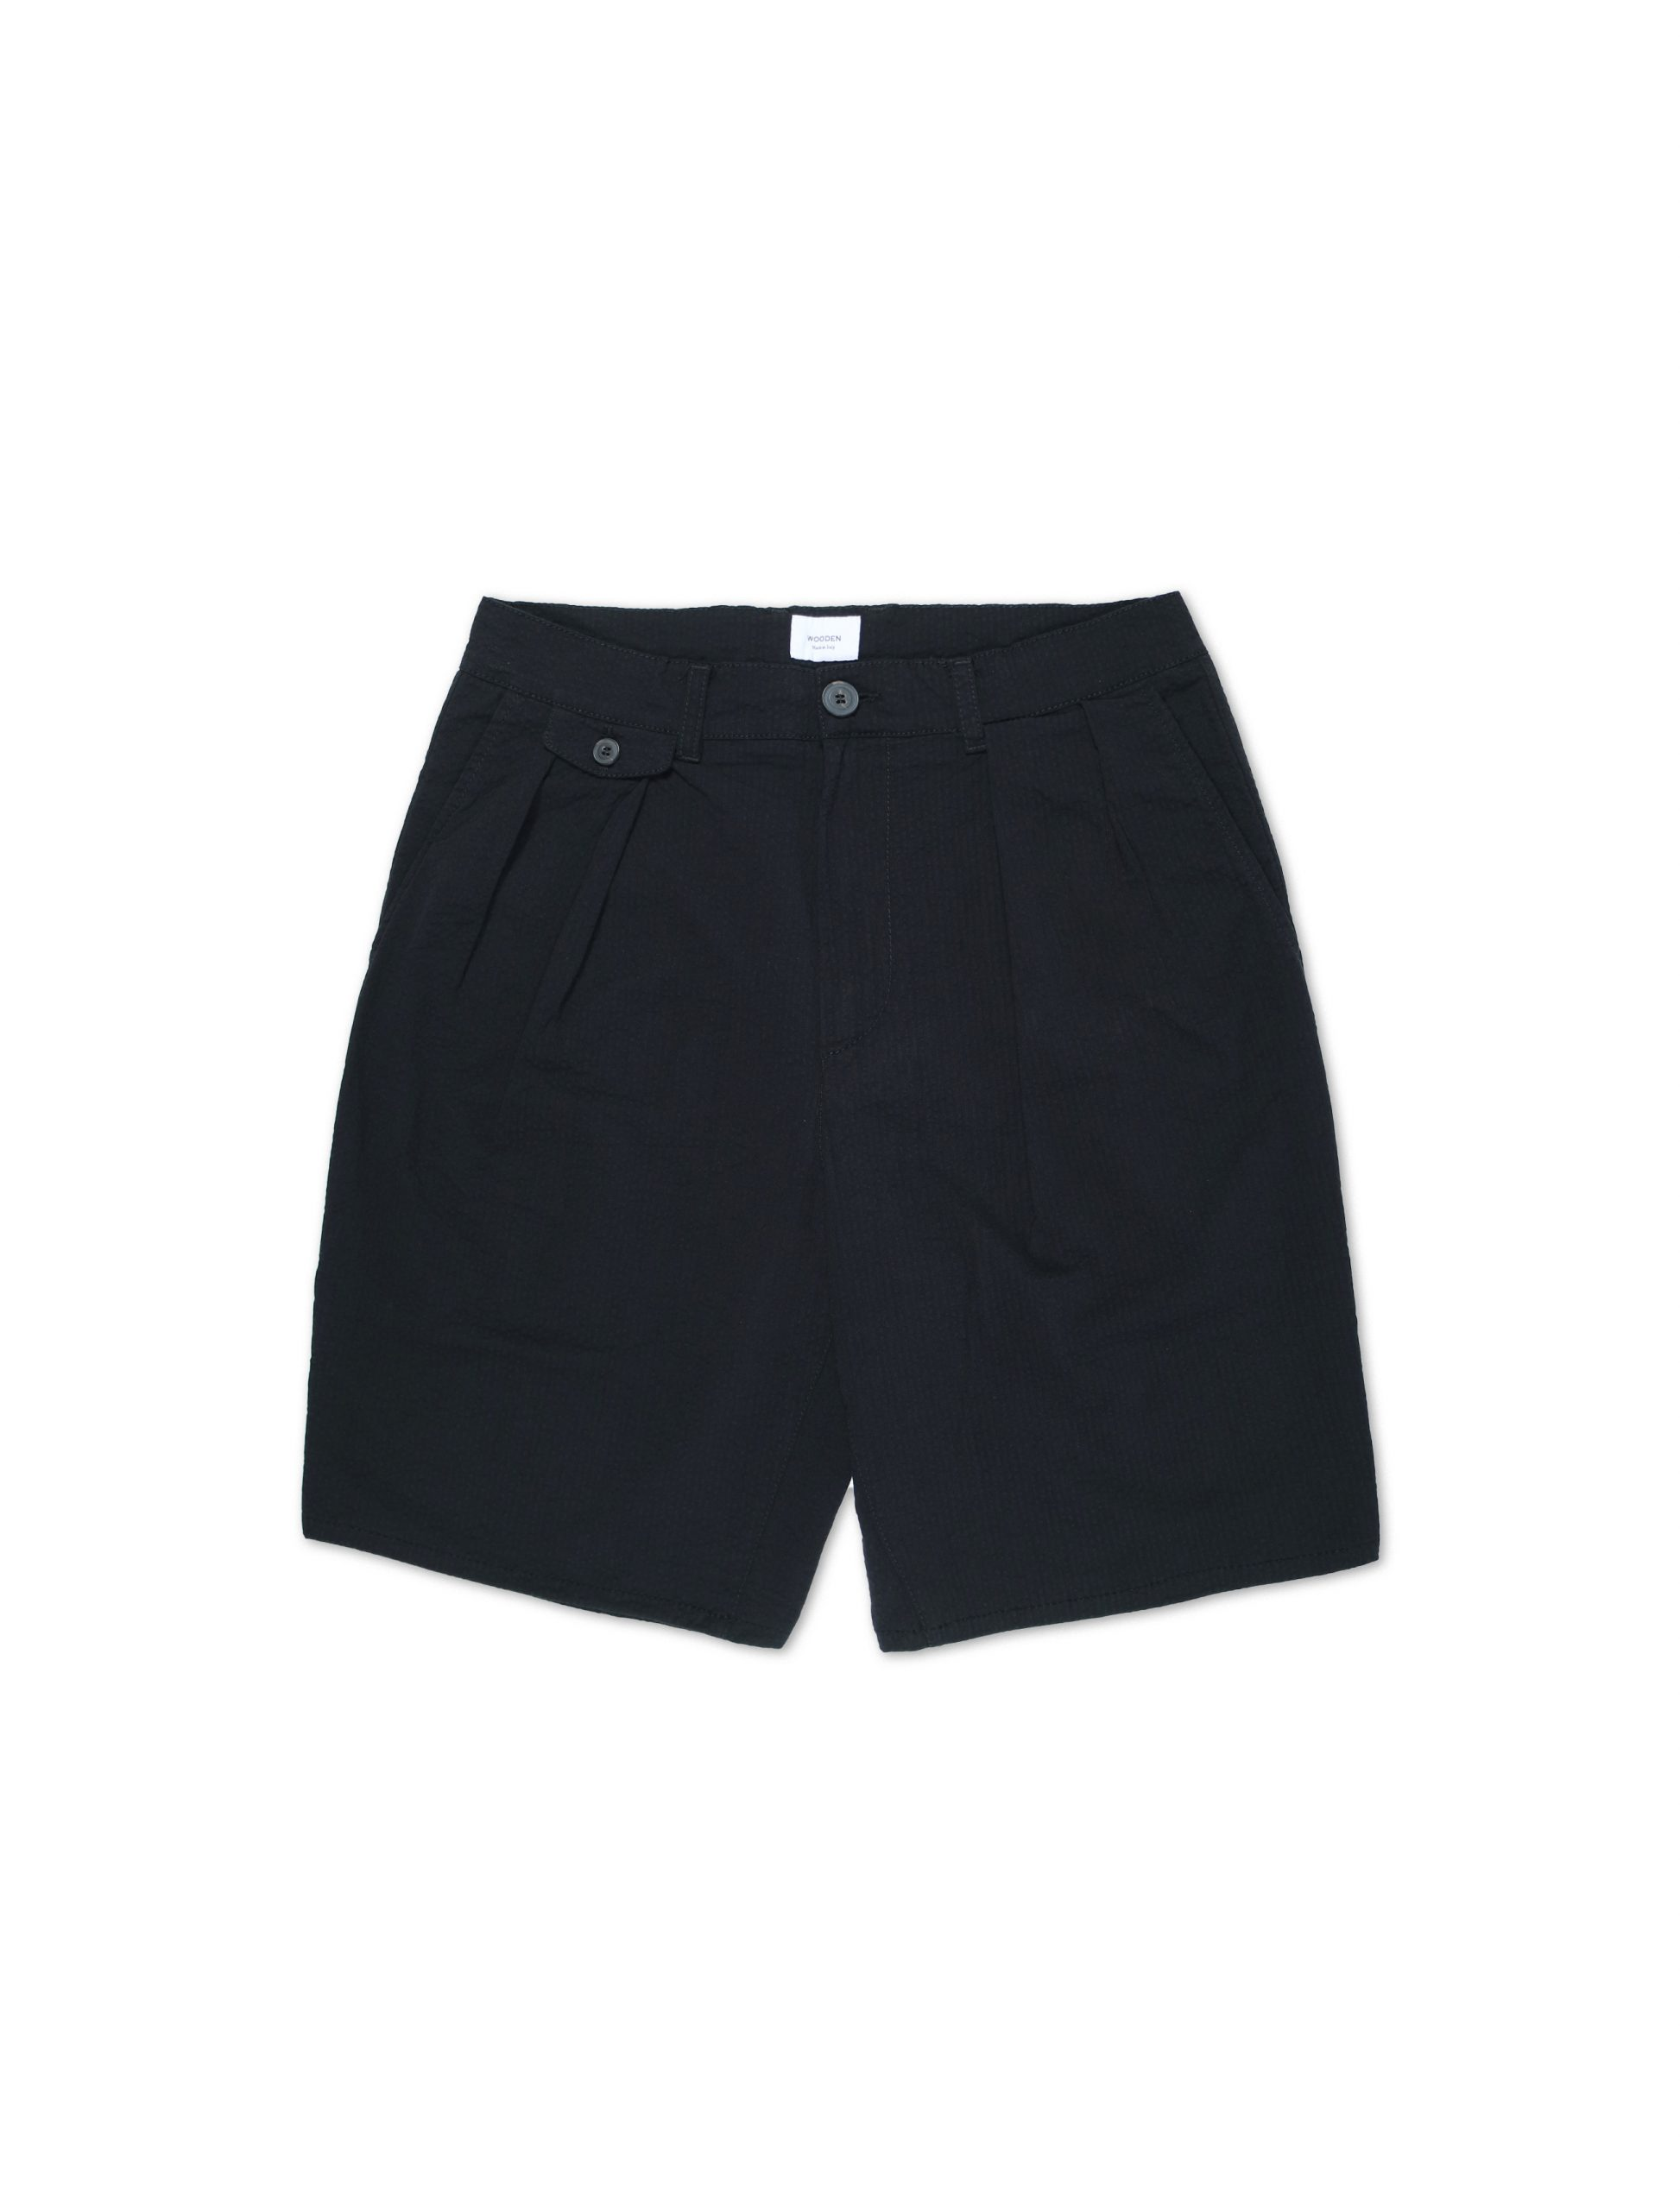 Paris Short Black | Wooden Store